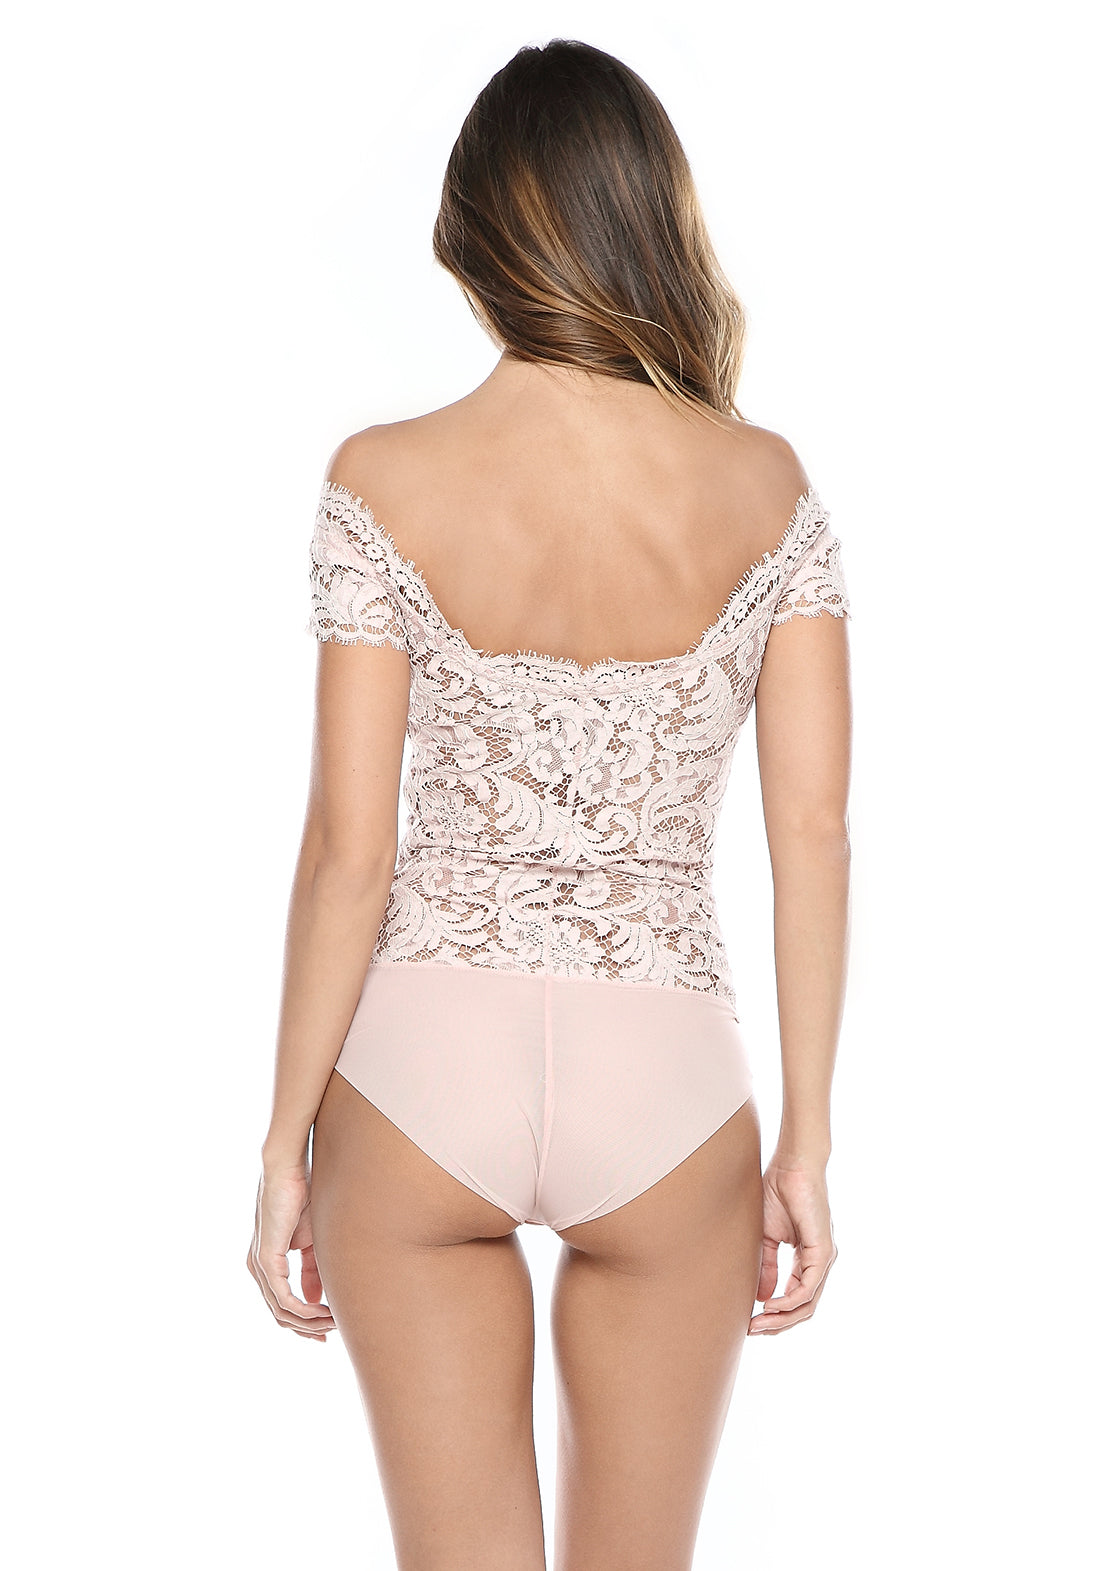 Nuit éphémère Off the Shoulder Bodysuit in Blush